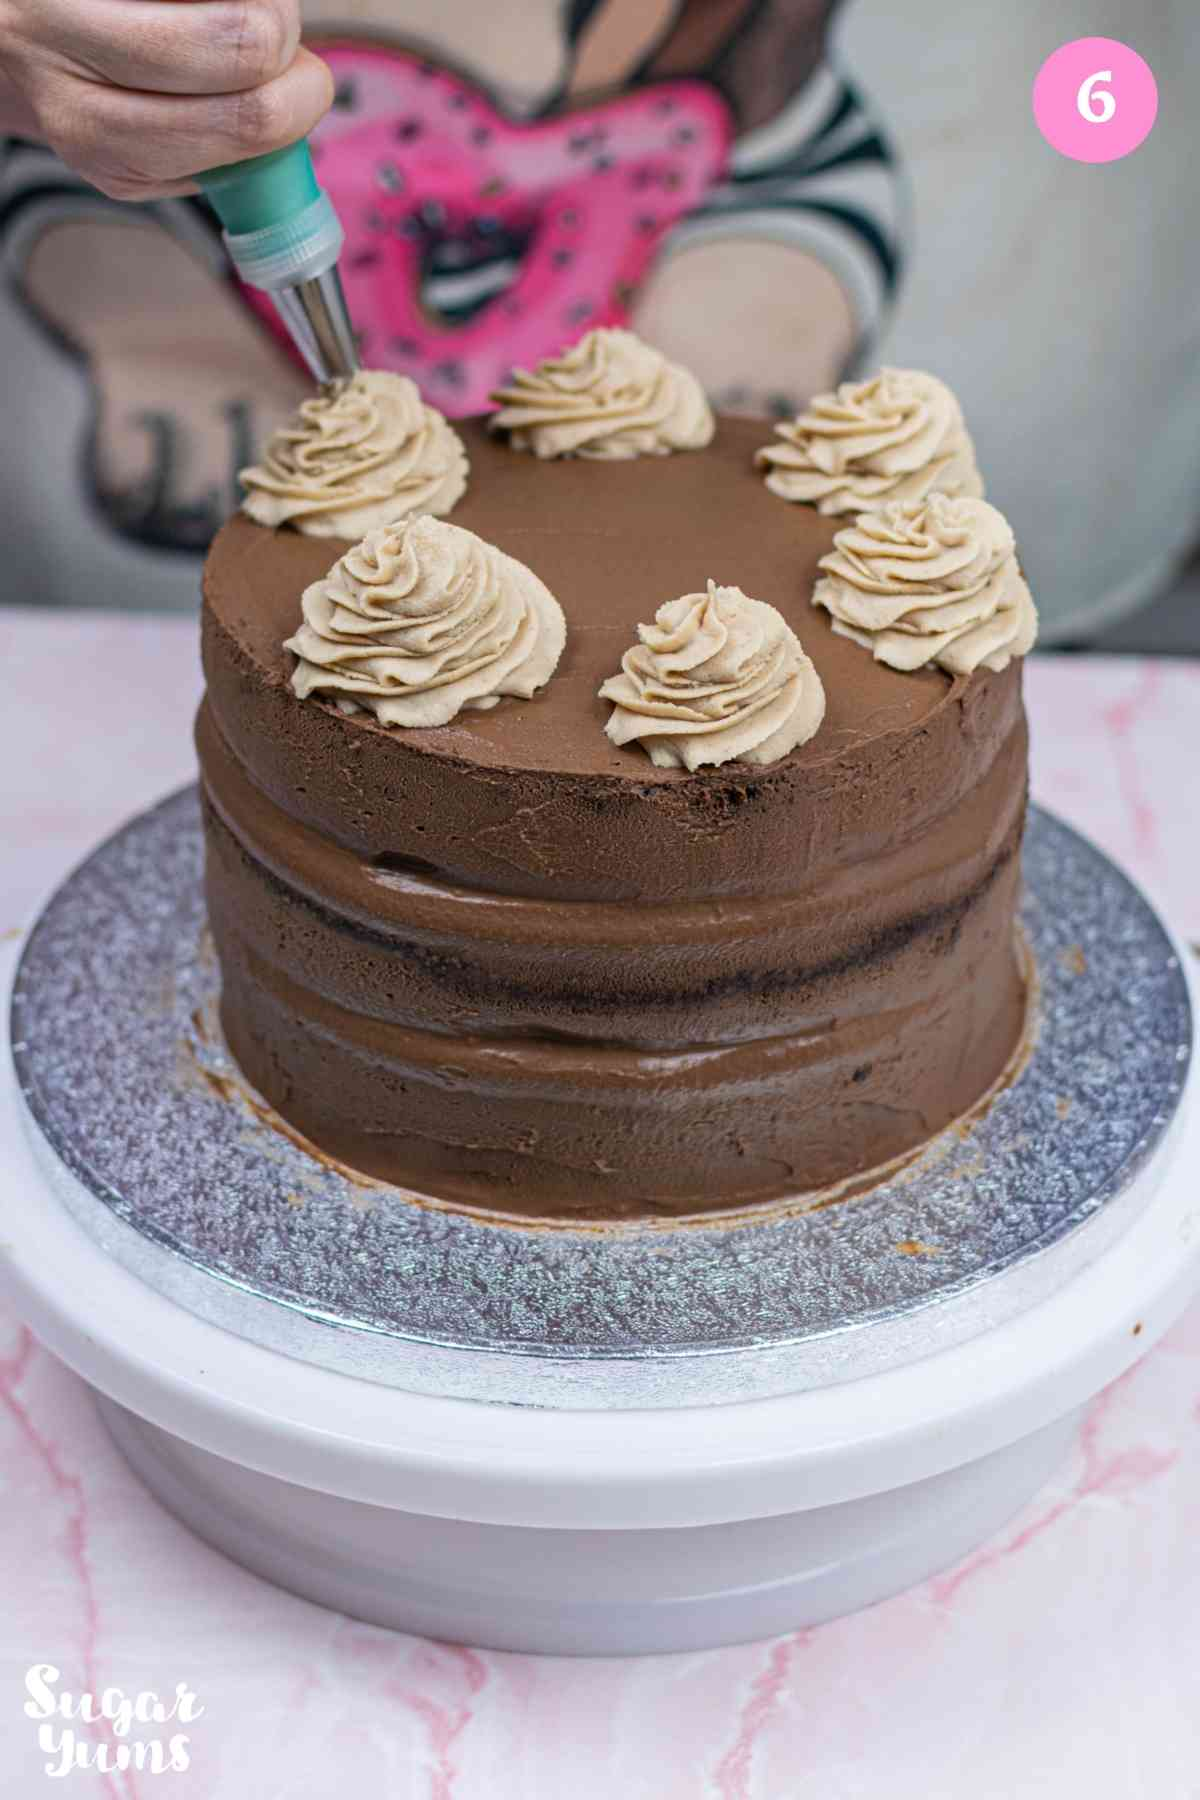 Piping dollops of ganache on the top of the cake with piping bag